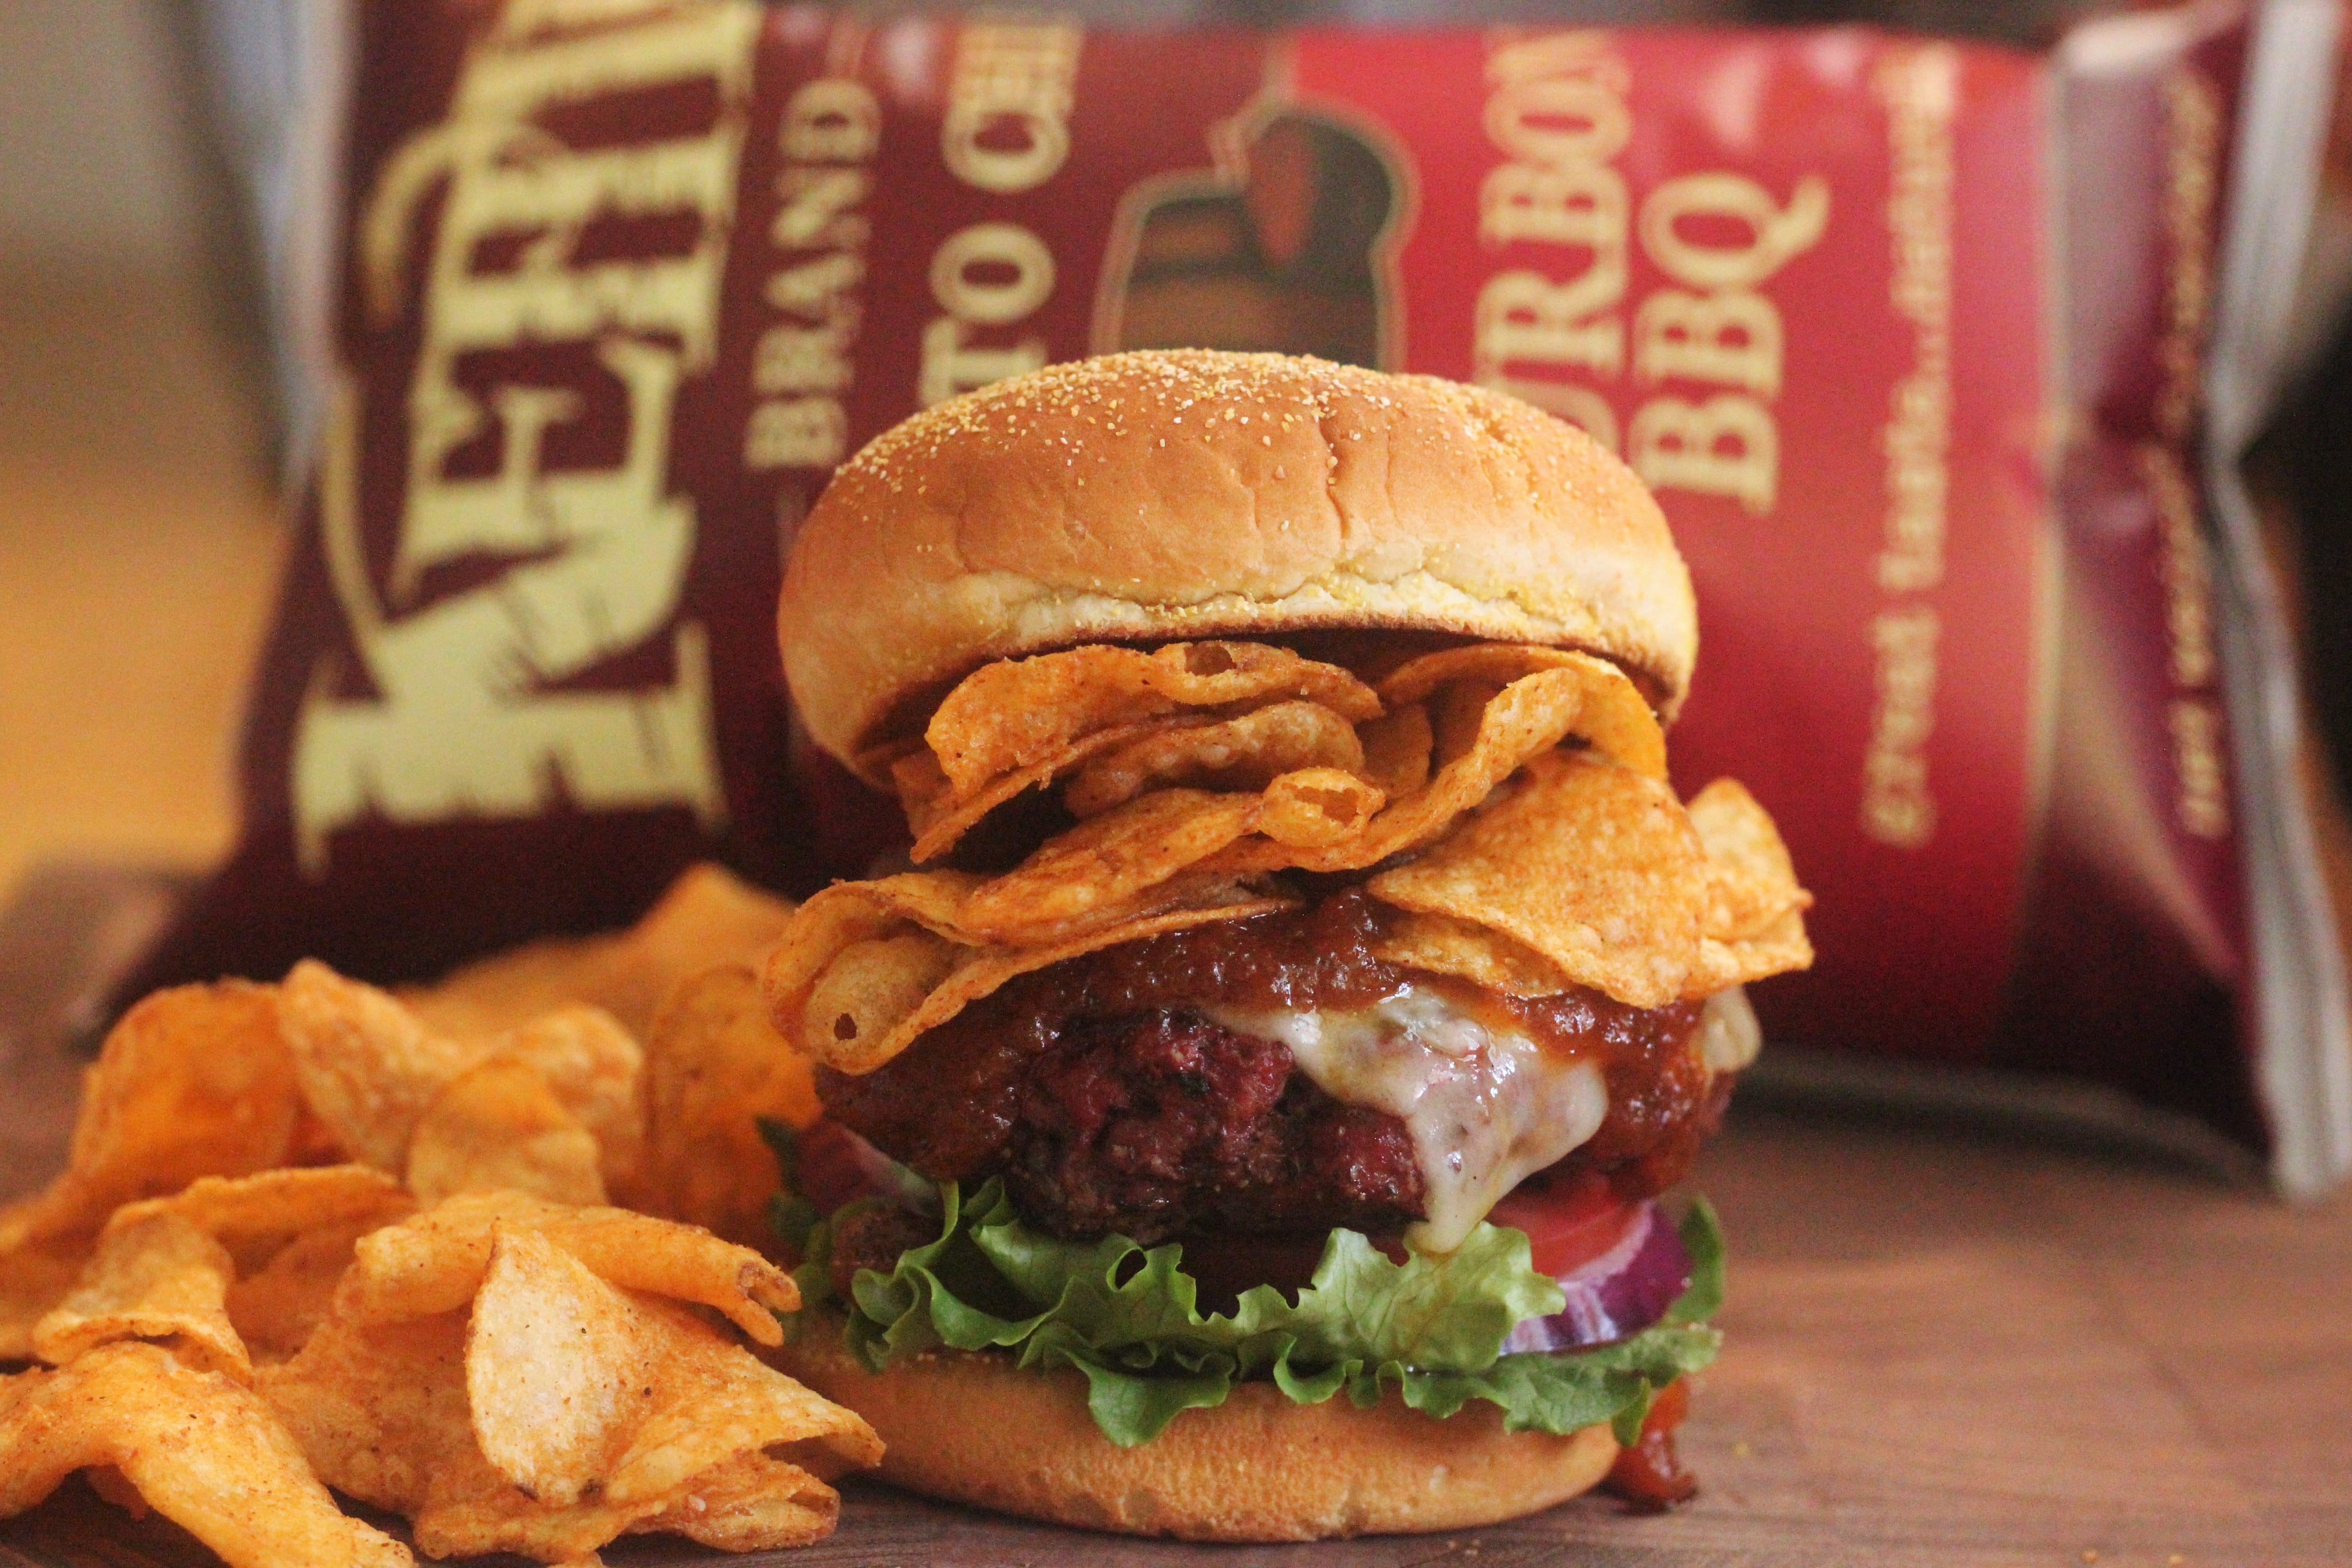 burger and chips on a wooden table.